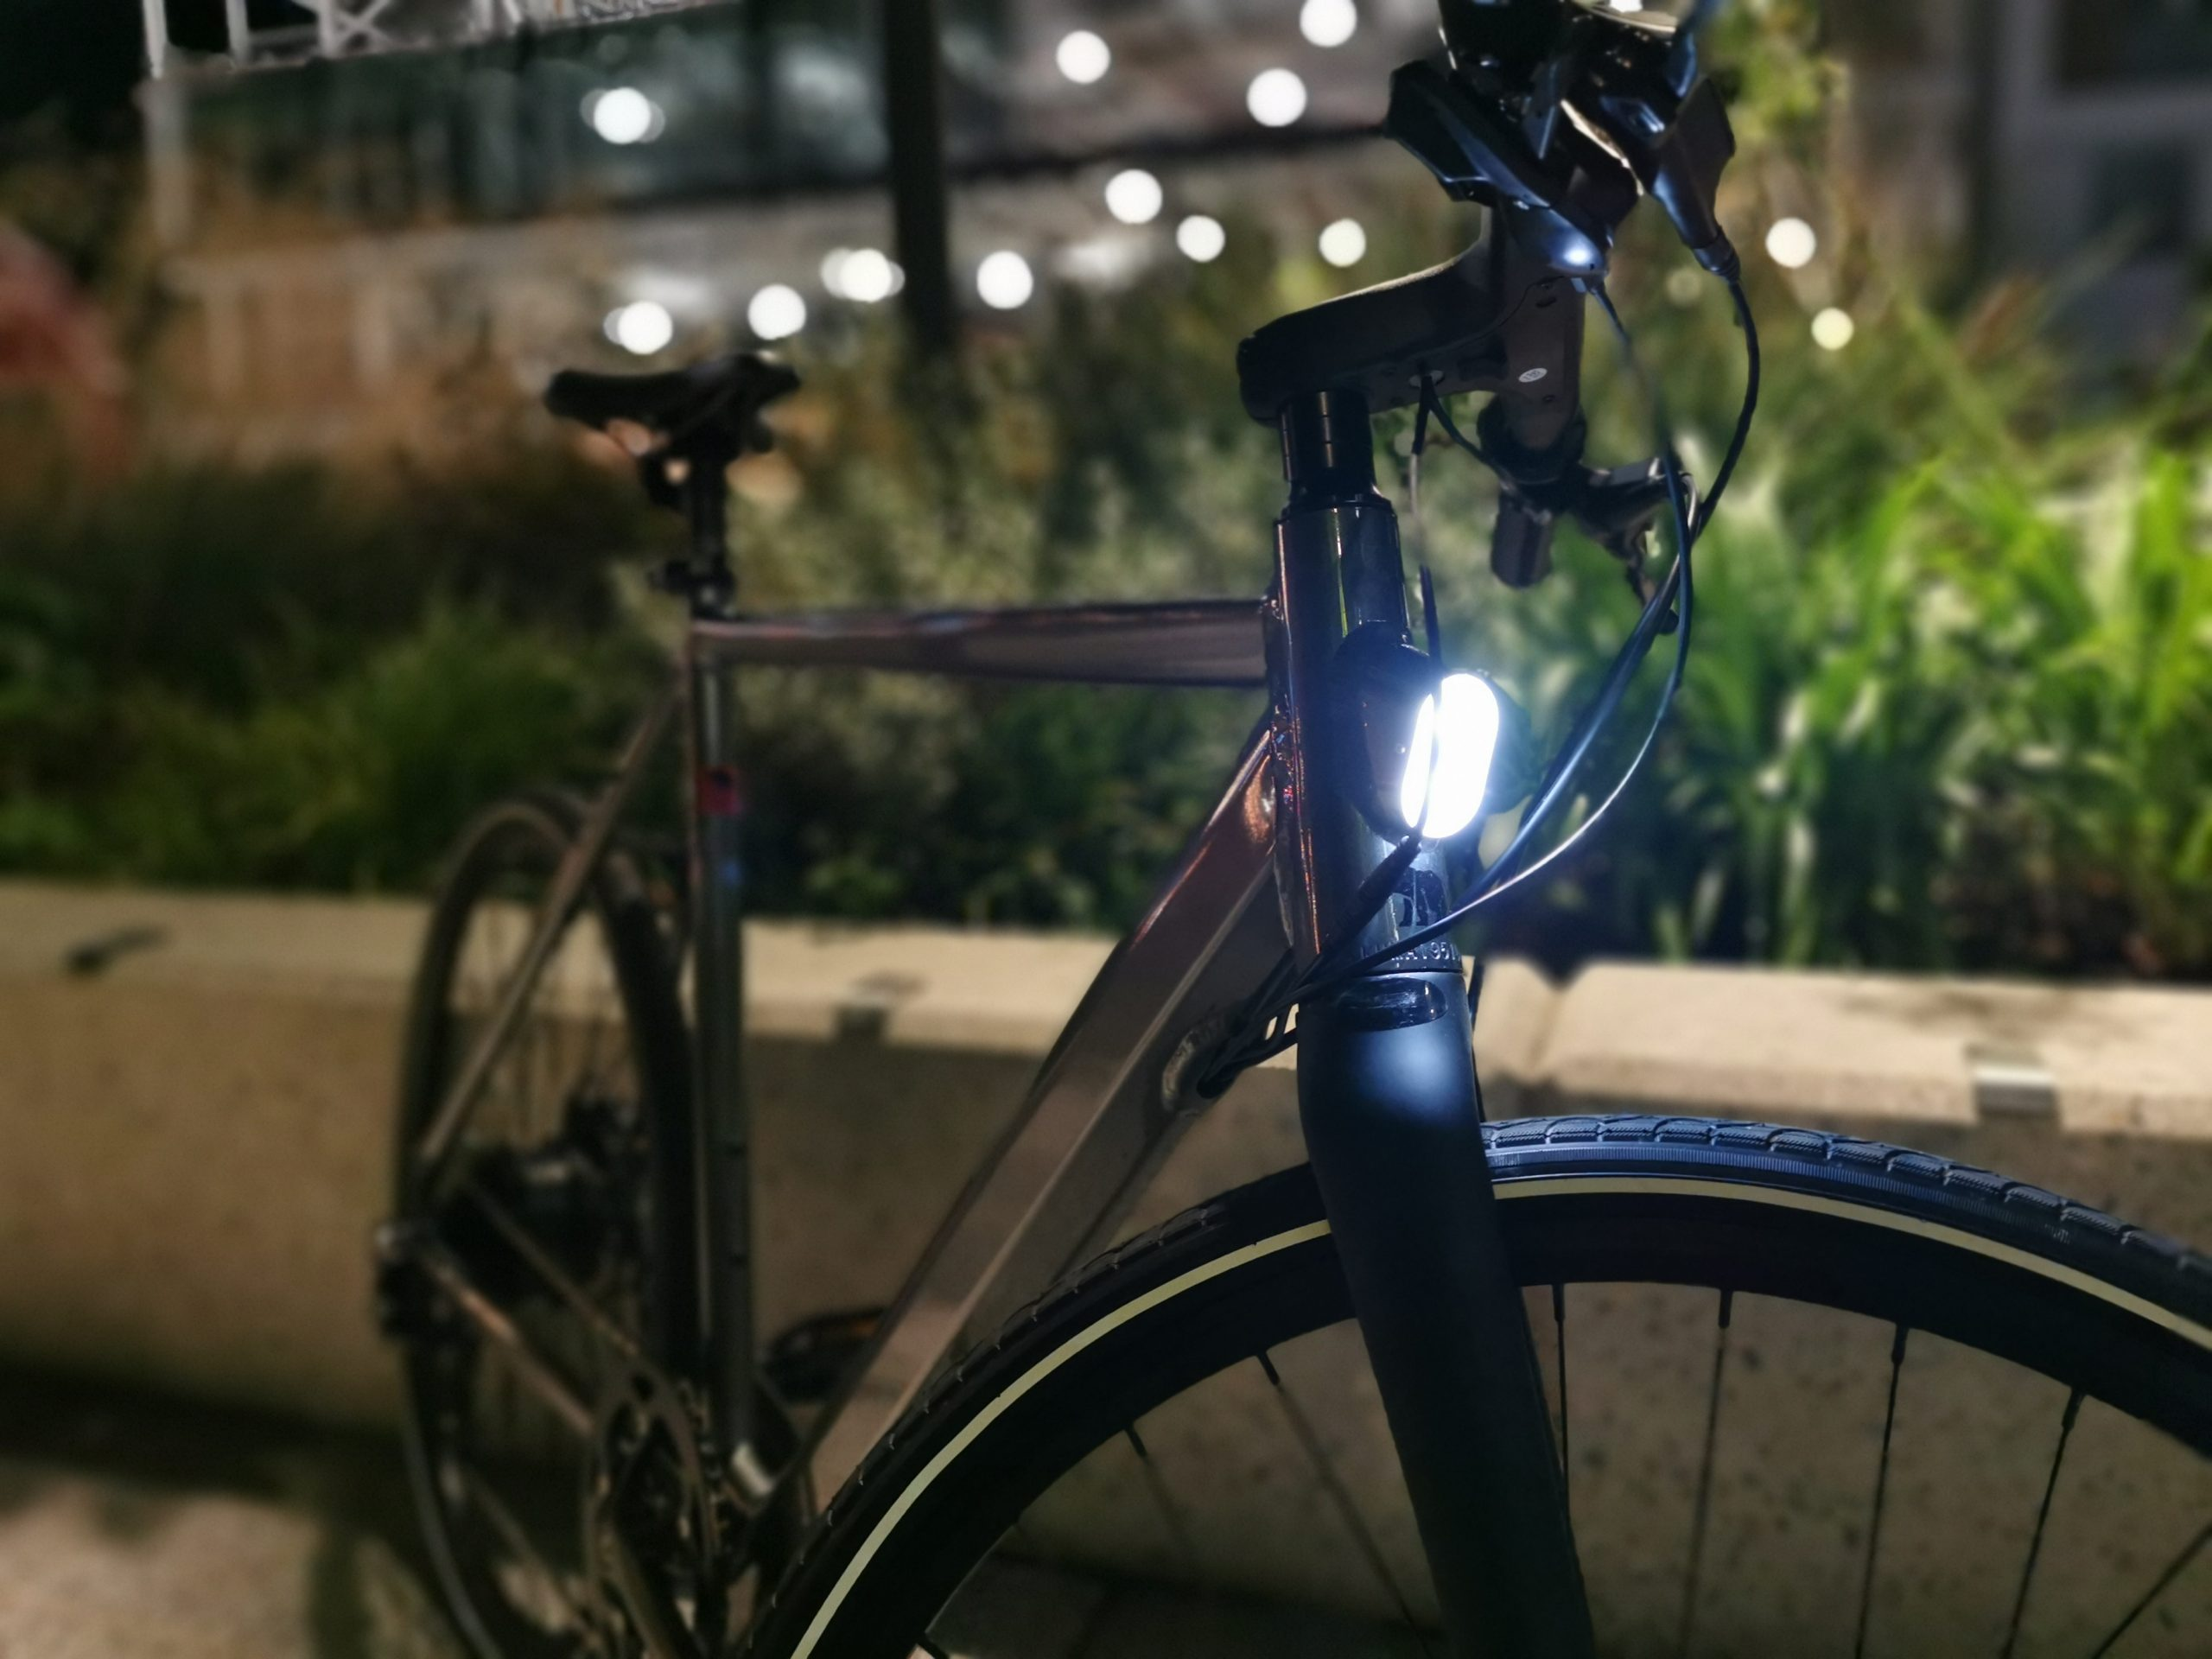 Pinergy partners with Kuma Bikes to build eMobility opportunities